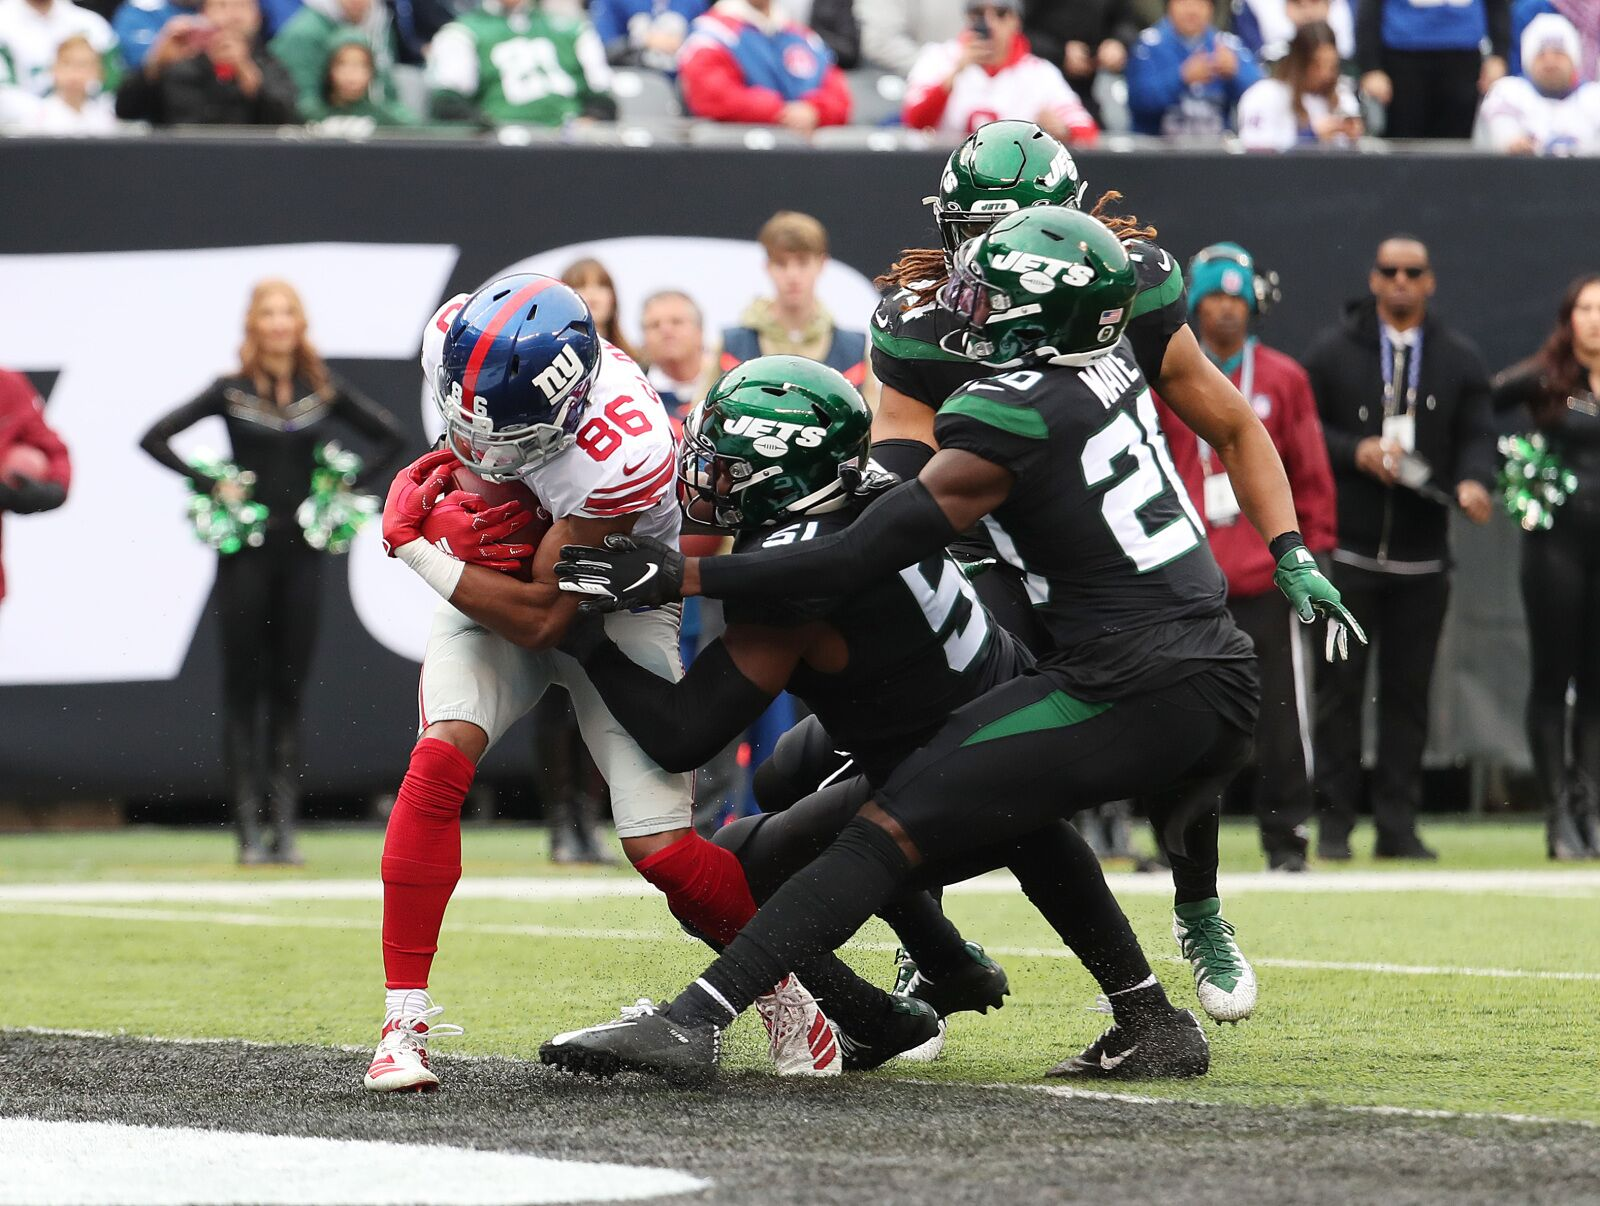 New York Giants: Analyzing 'Big Play Slay's' breakout performance against the Jets